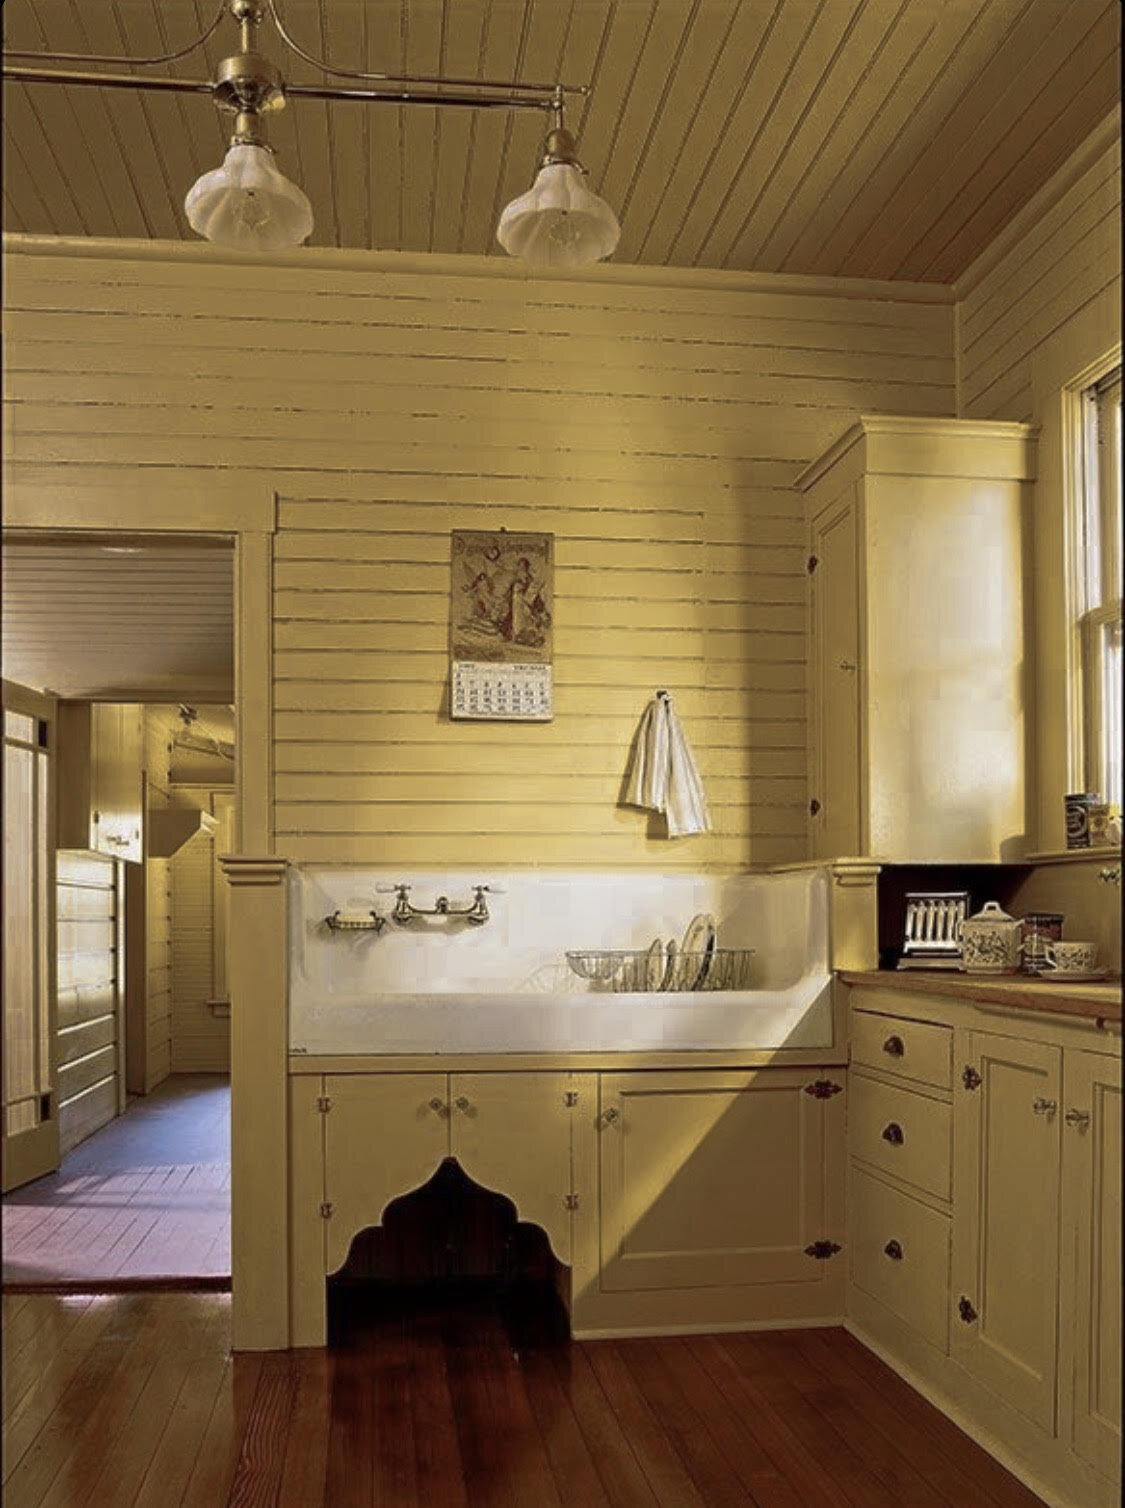 This kitchen has been saved on my Pinterest for YEARS. I just mirrored it and changed the yellow tone to be closer to what I am envisioning.